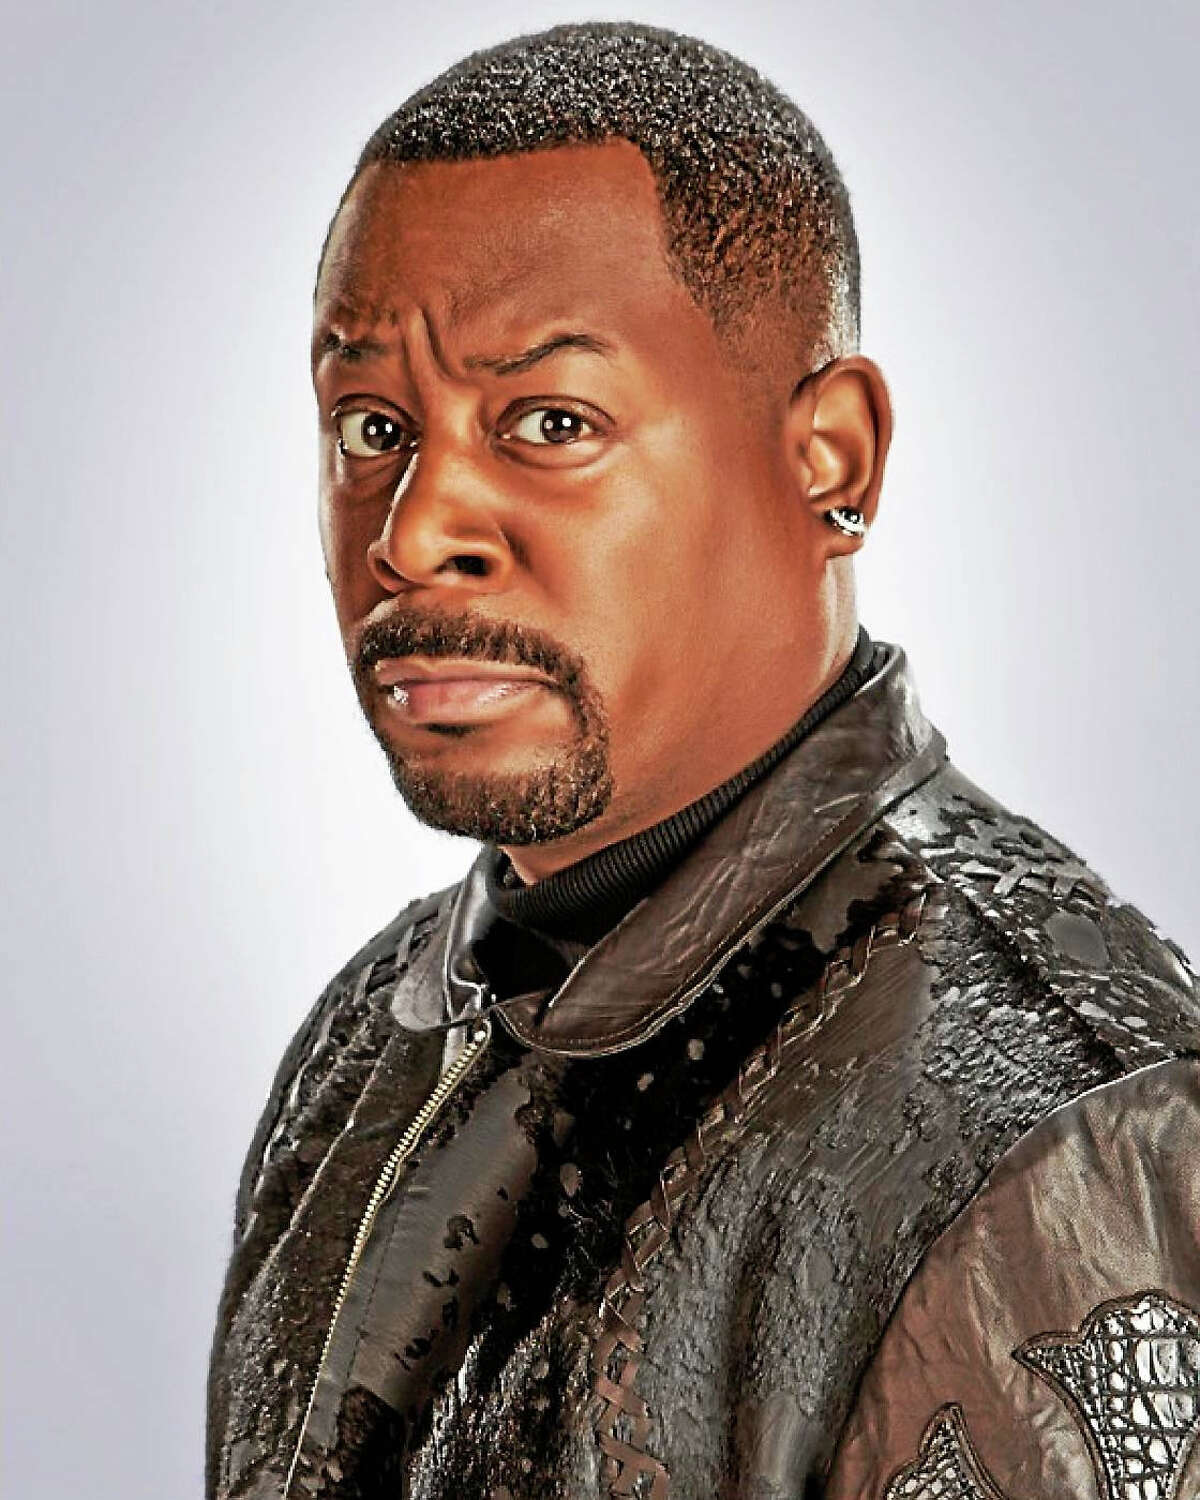 Contributed photoComedian, actor and film maker, Martin Lawrence, will perform his stand up comedy show at Foxwoods Resort Casino in Mashantucket on Sunday, Oct. 25.